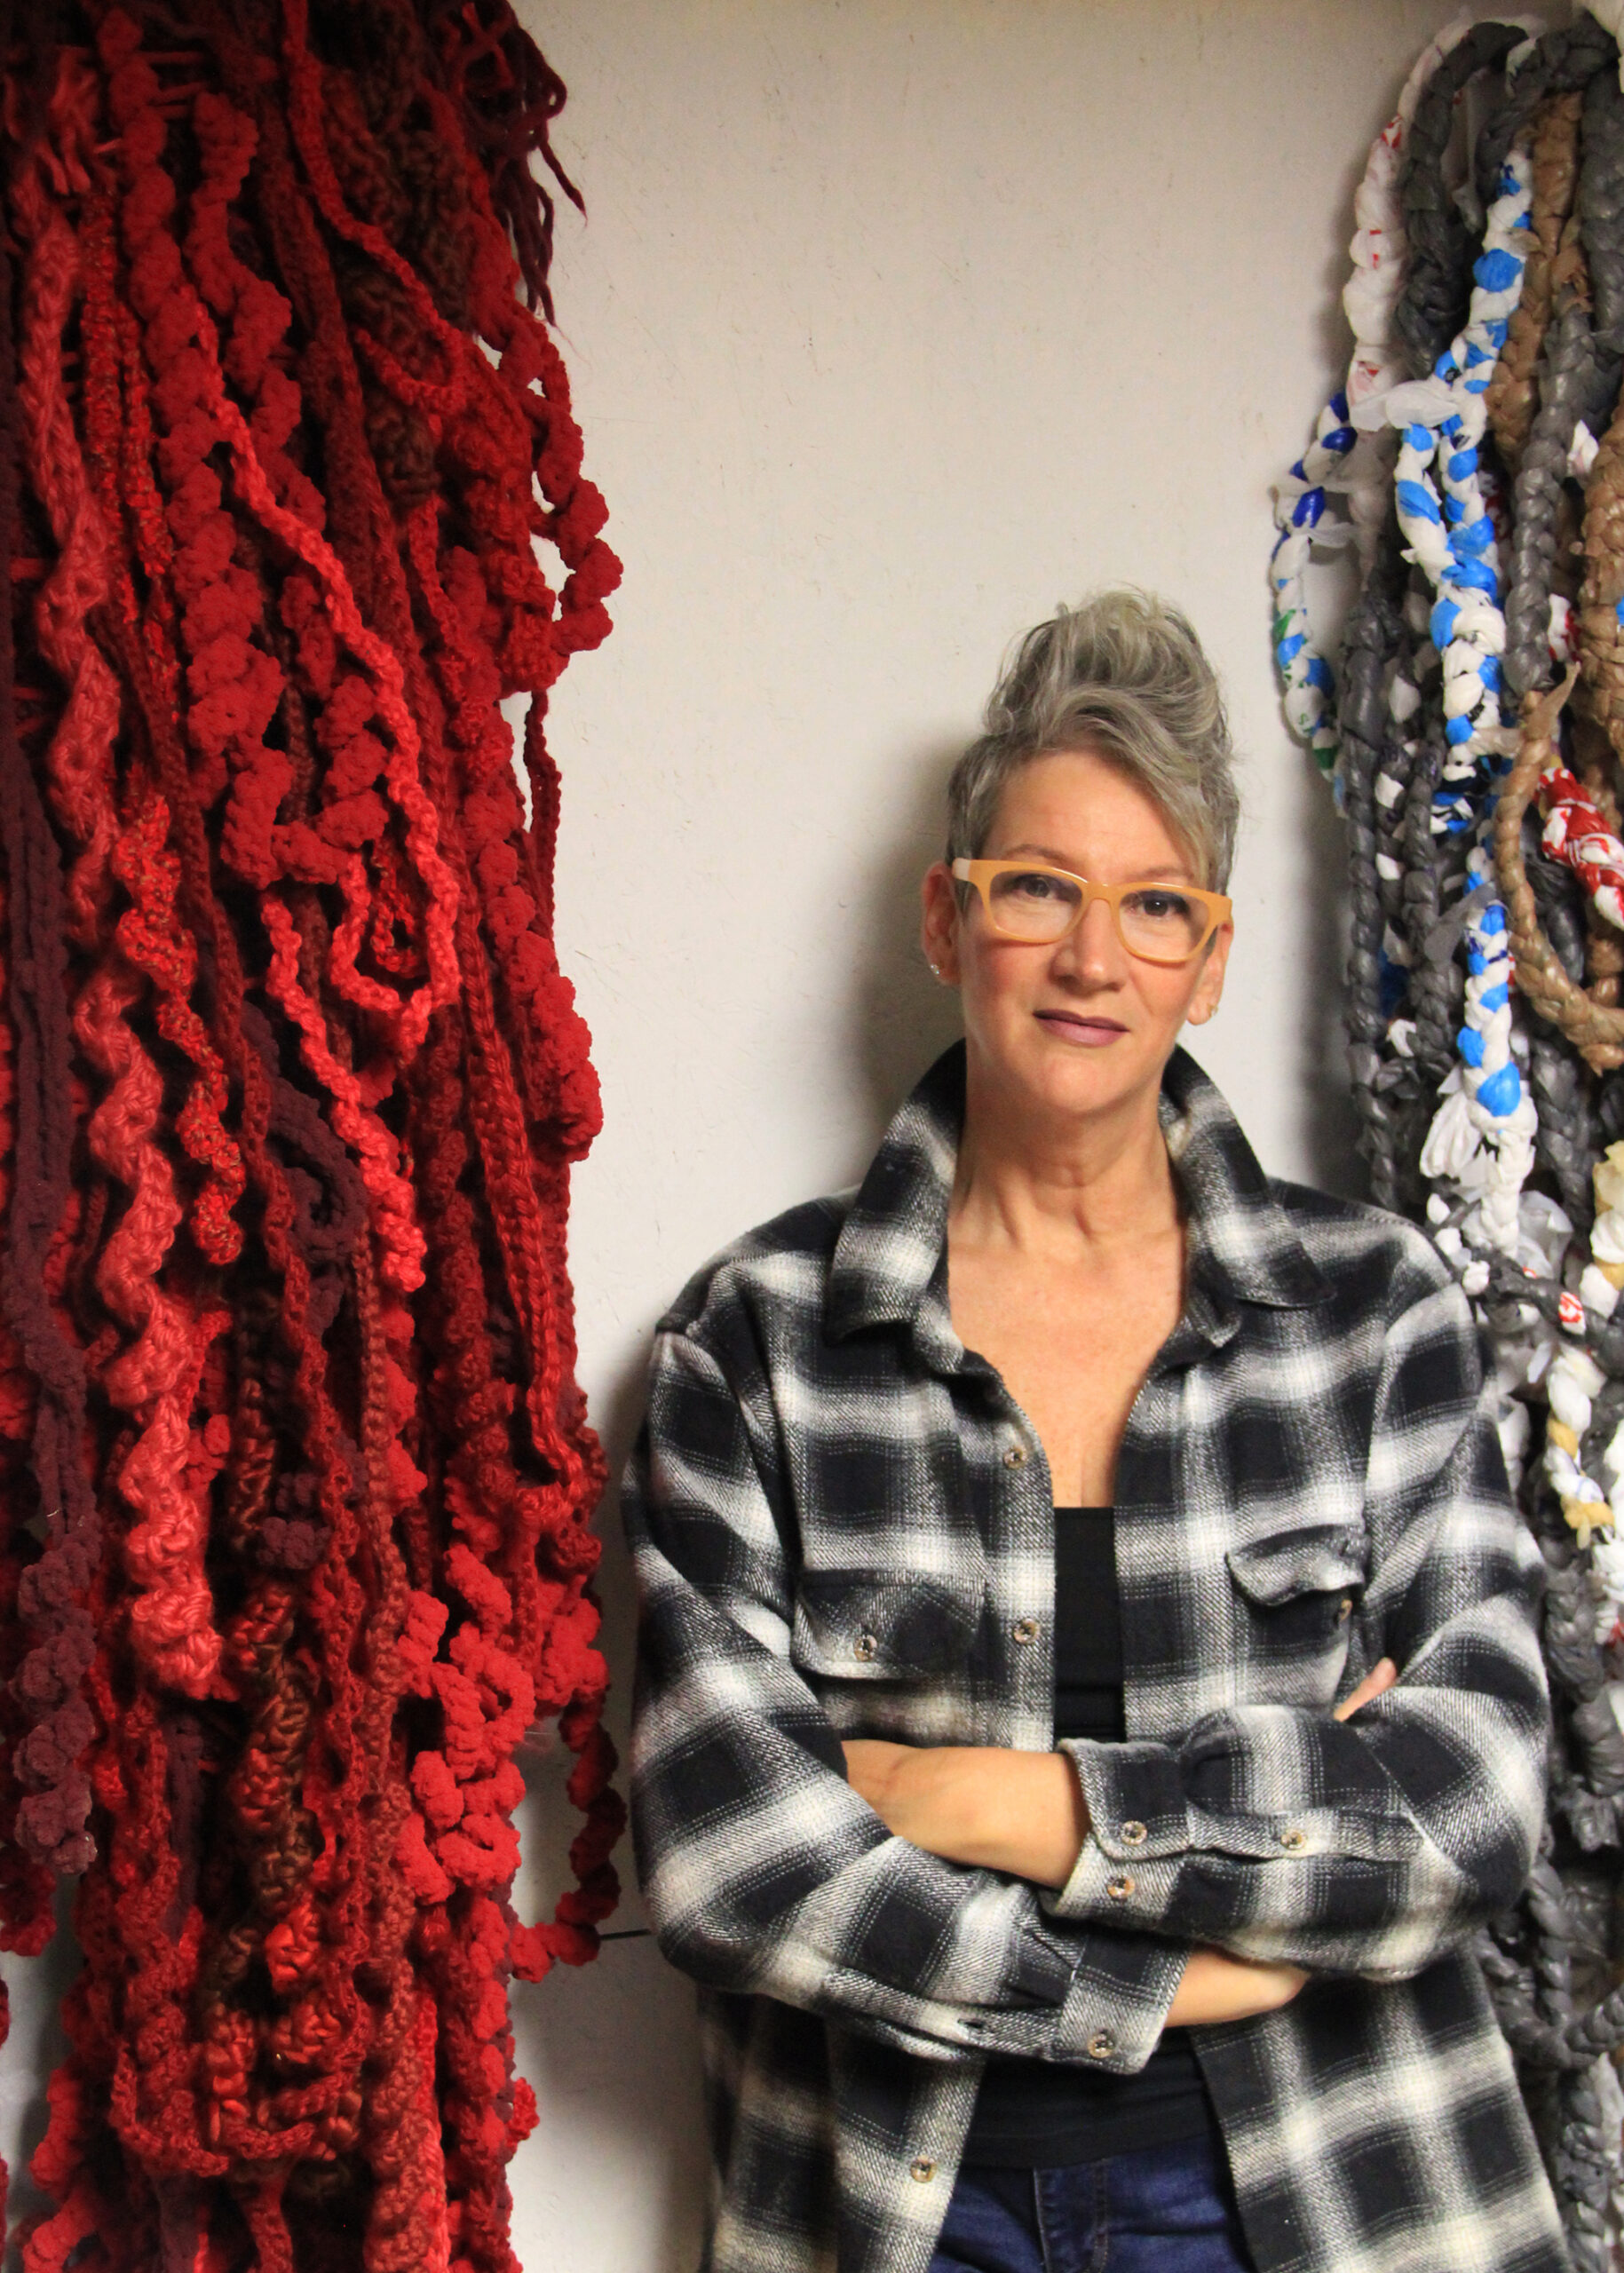 An artist stands with arms folded between two large bundles of chunky fibers hanging from the wall